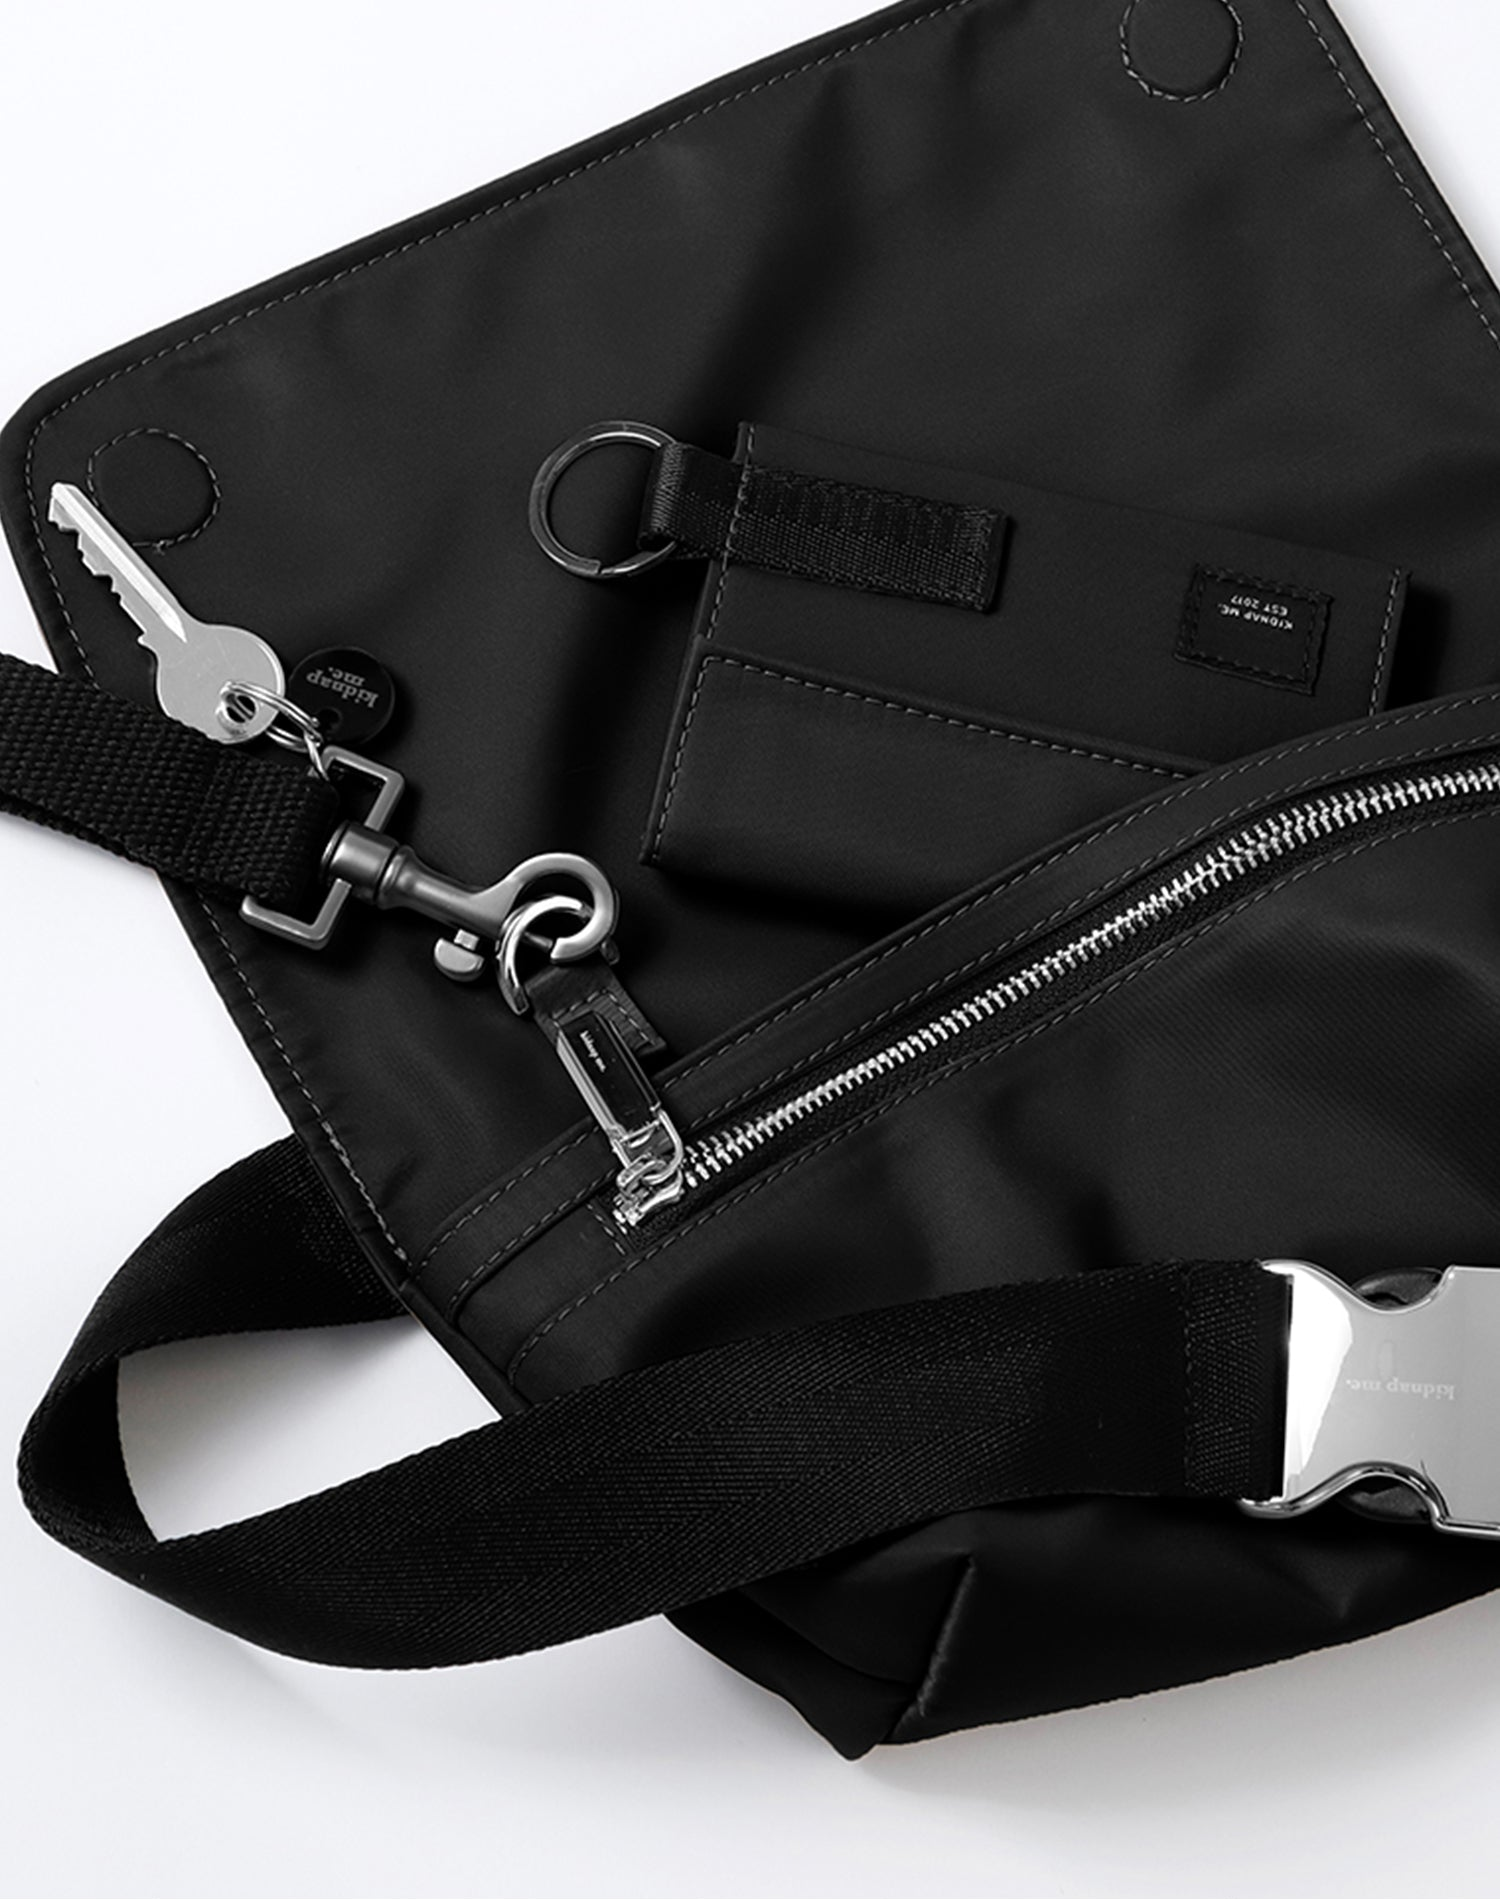 Charcoal Nylon Belt Sling Bag.木炭系尼龍斜揹腰包